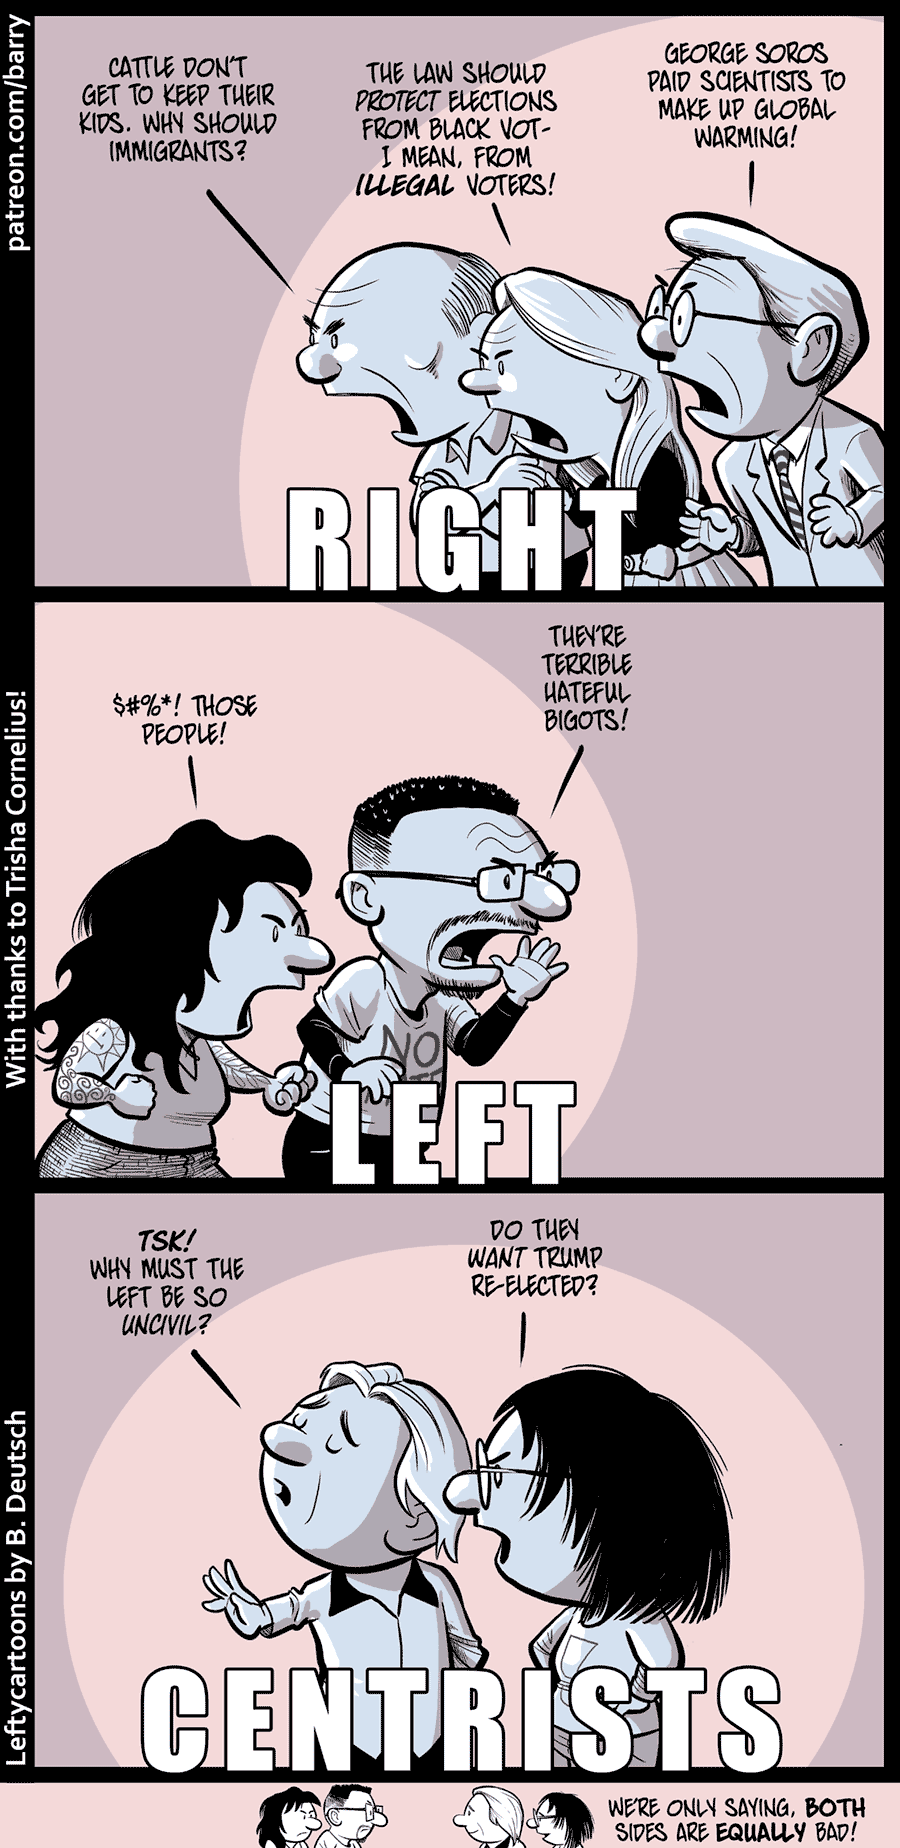 cicility-and-centrists.png